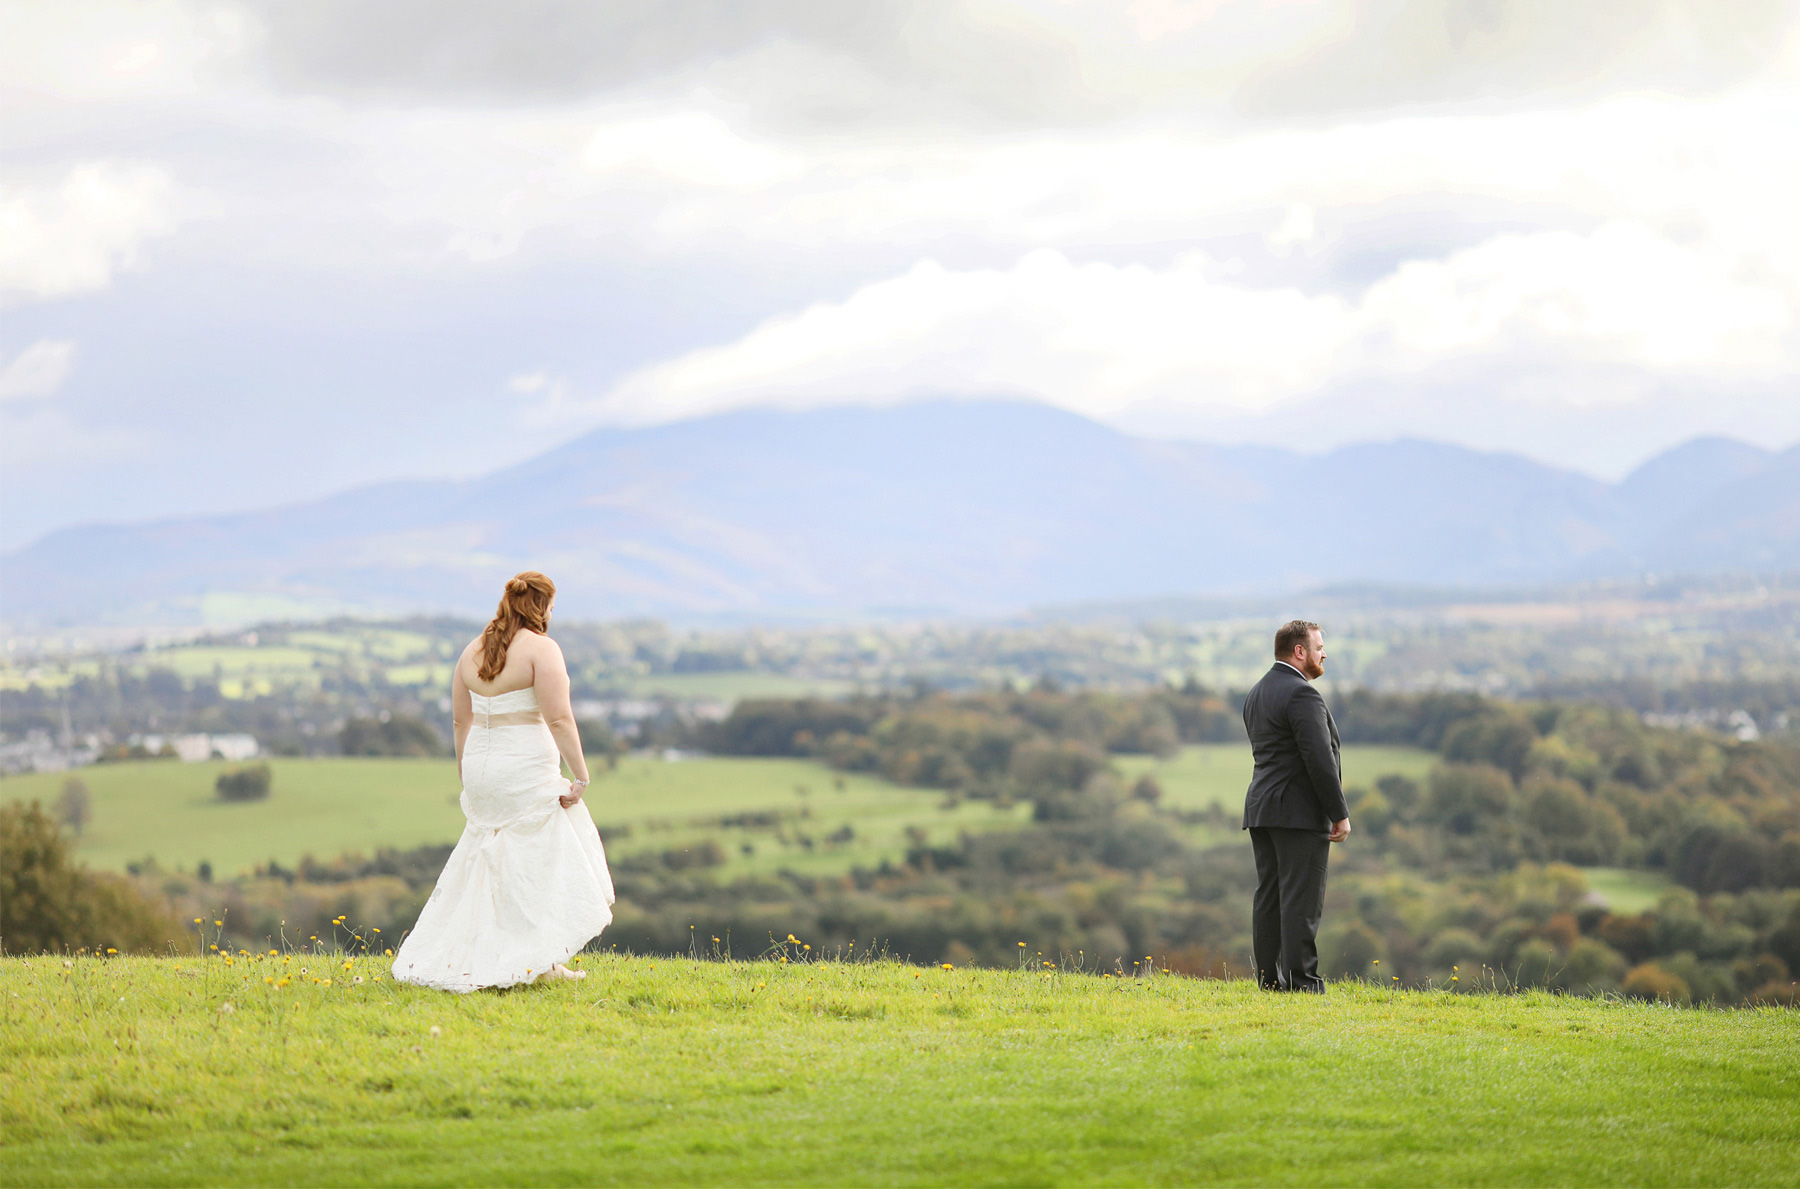 21-Kilarney-Ireland-Wedding-Photographer-by-Andrew-Vick-Photography-Fall-Autumn-Destination-First-Meeting-Look-Bride-Groom-Landscape-Village-Field-Becca-and-Donal.jpg